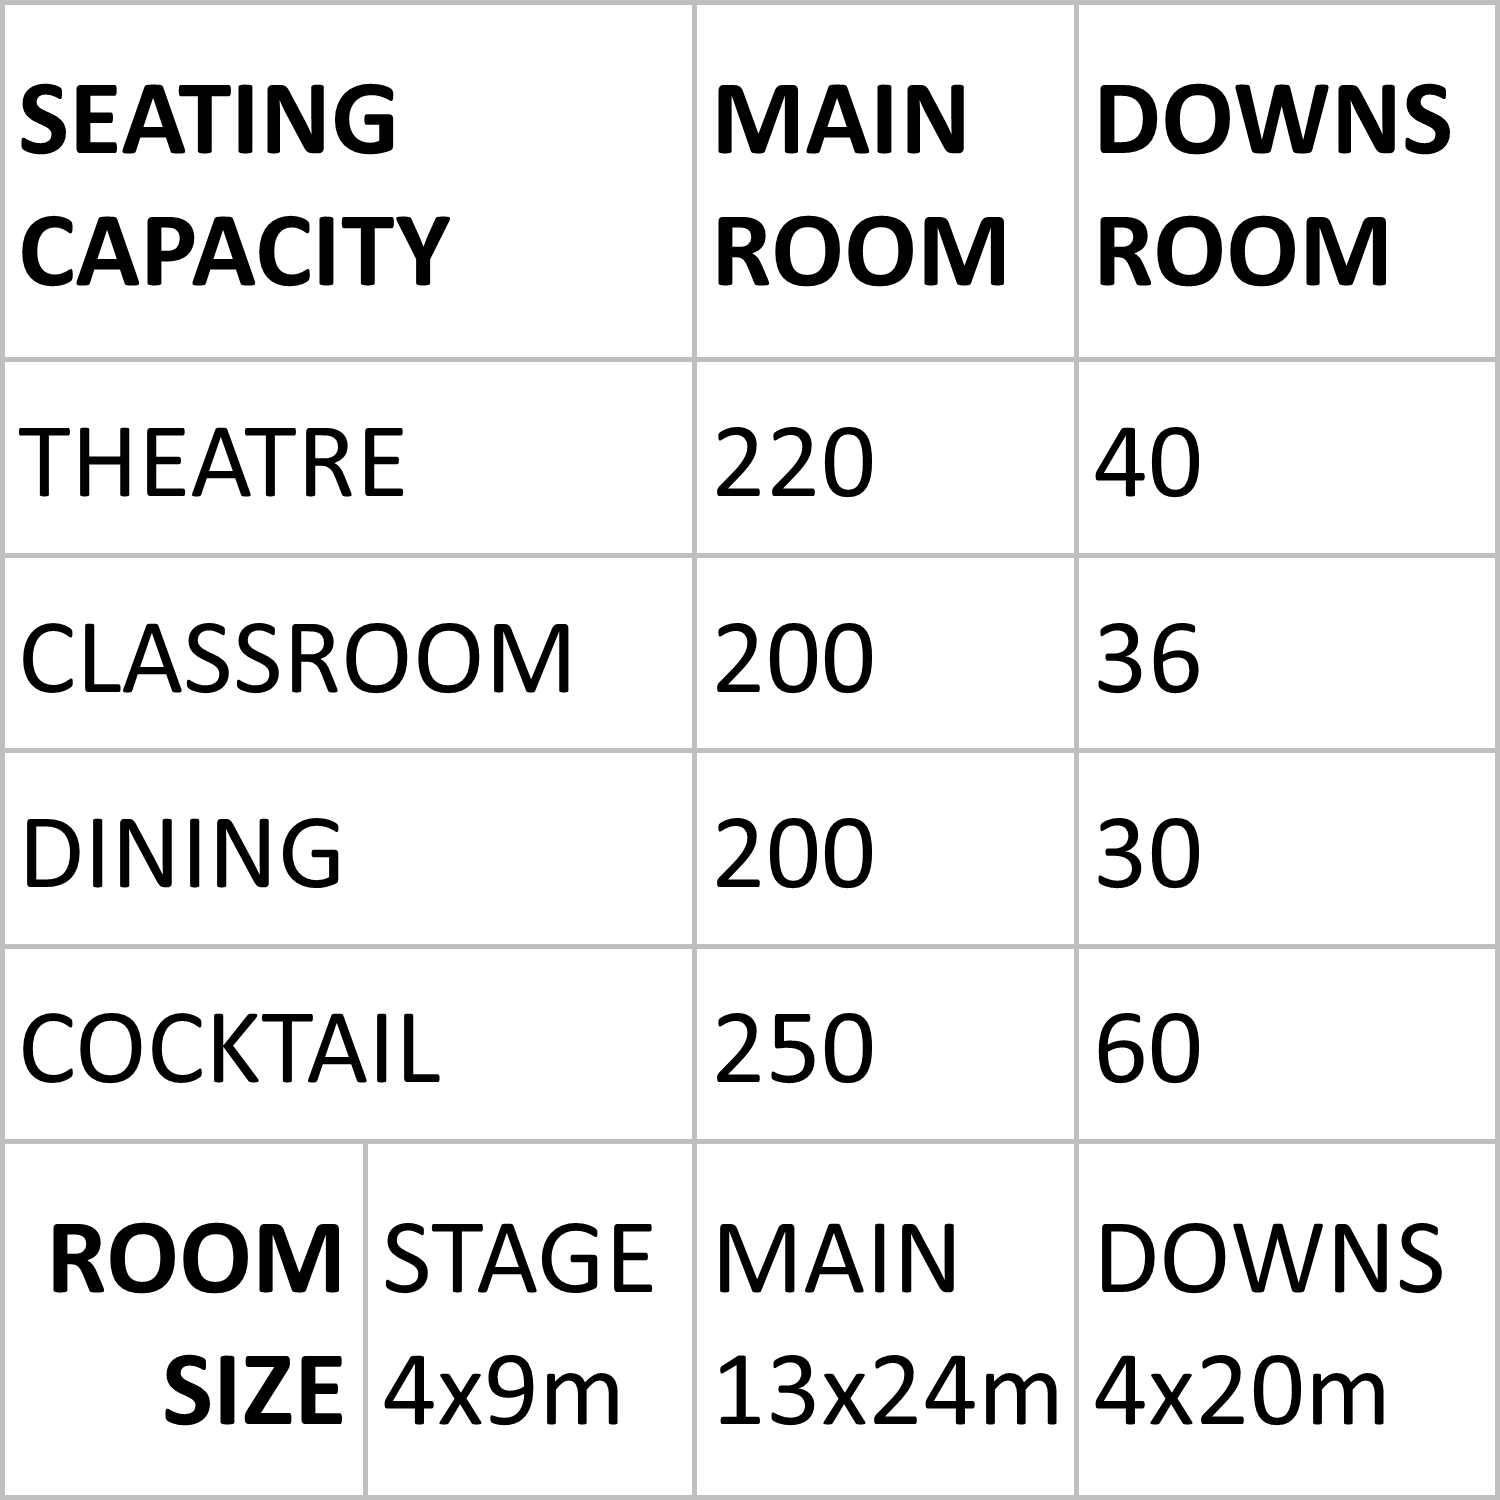 seating config3.png